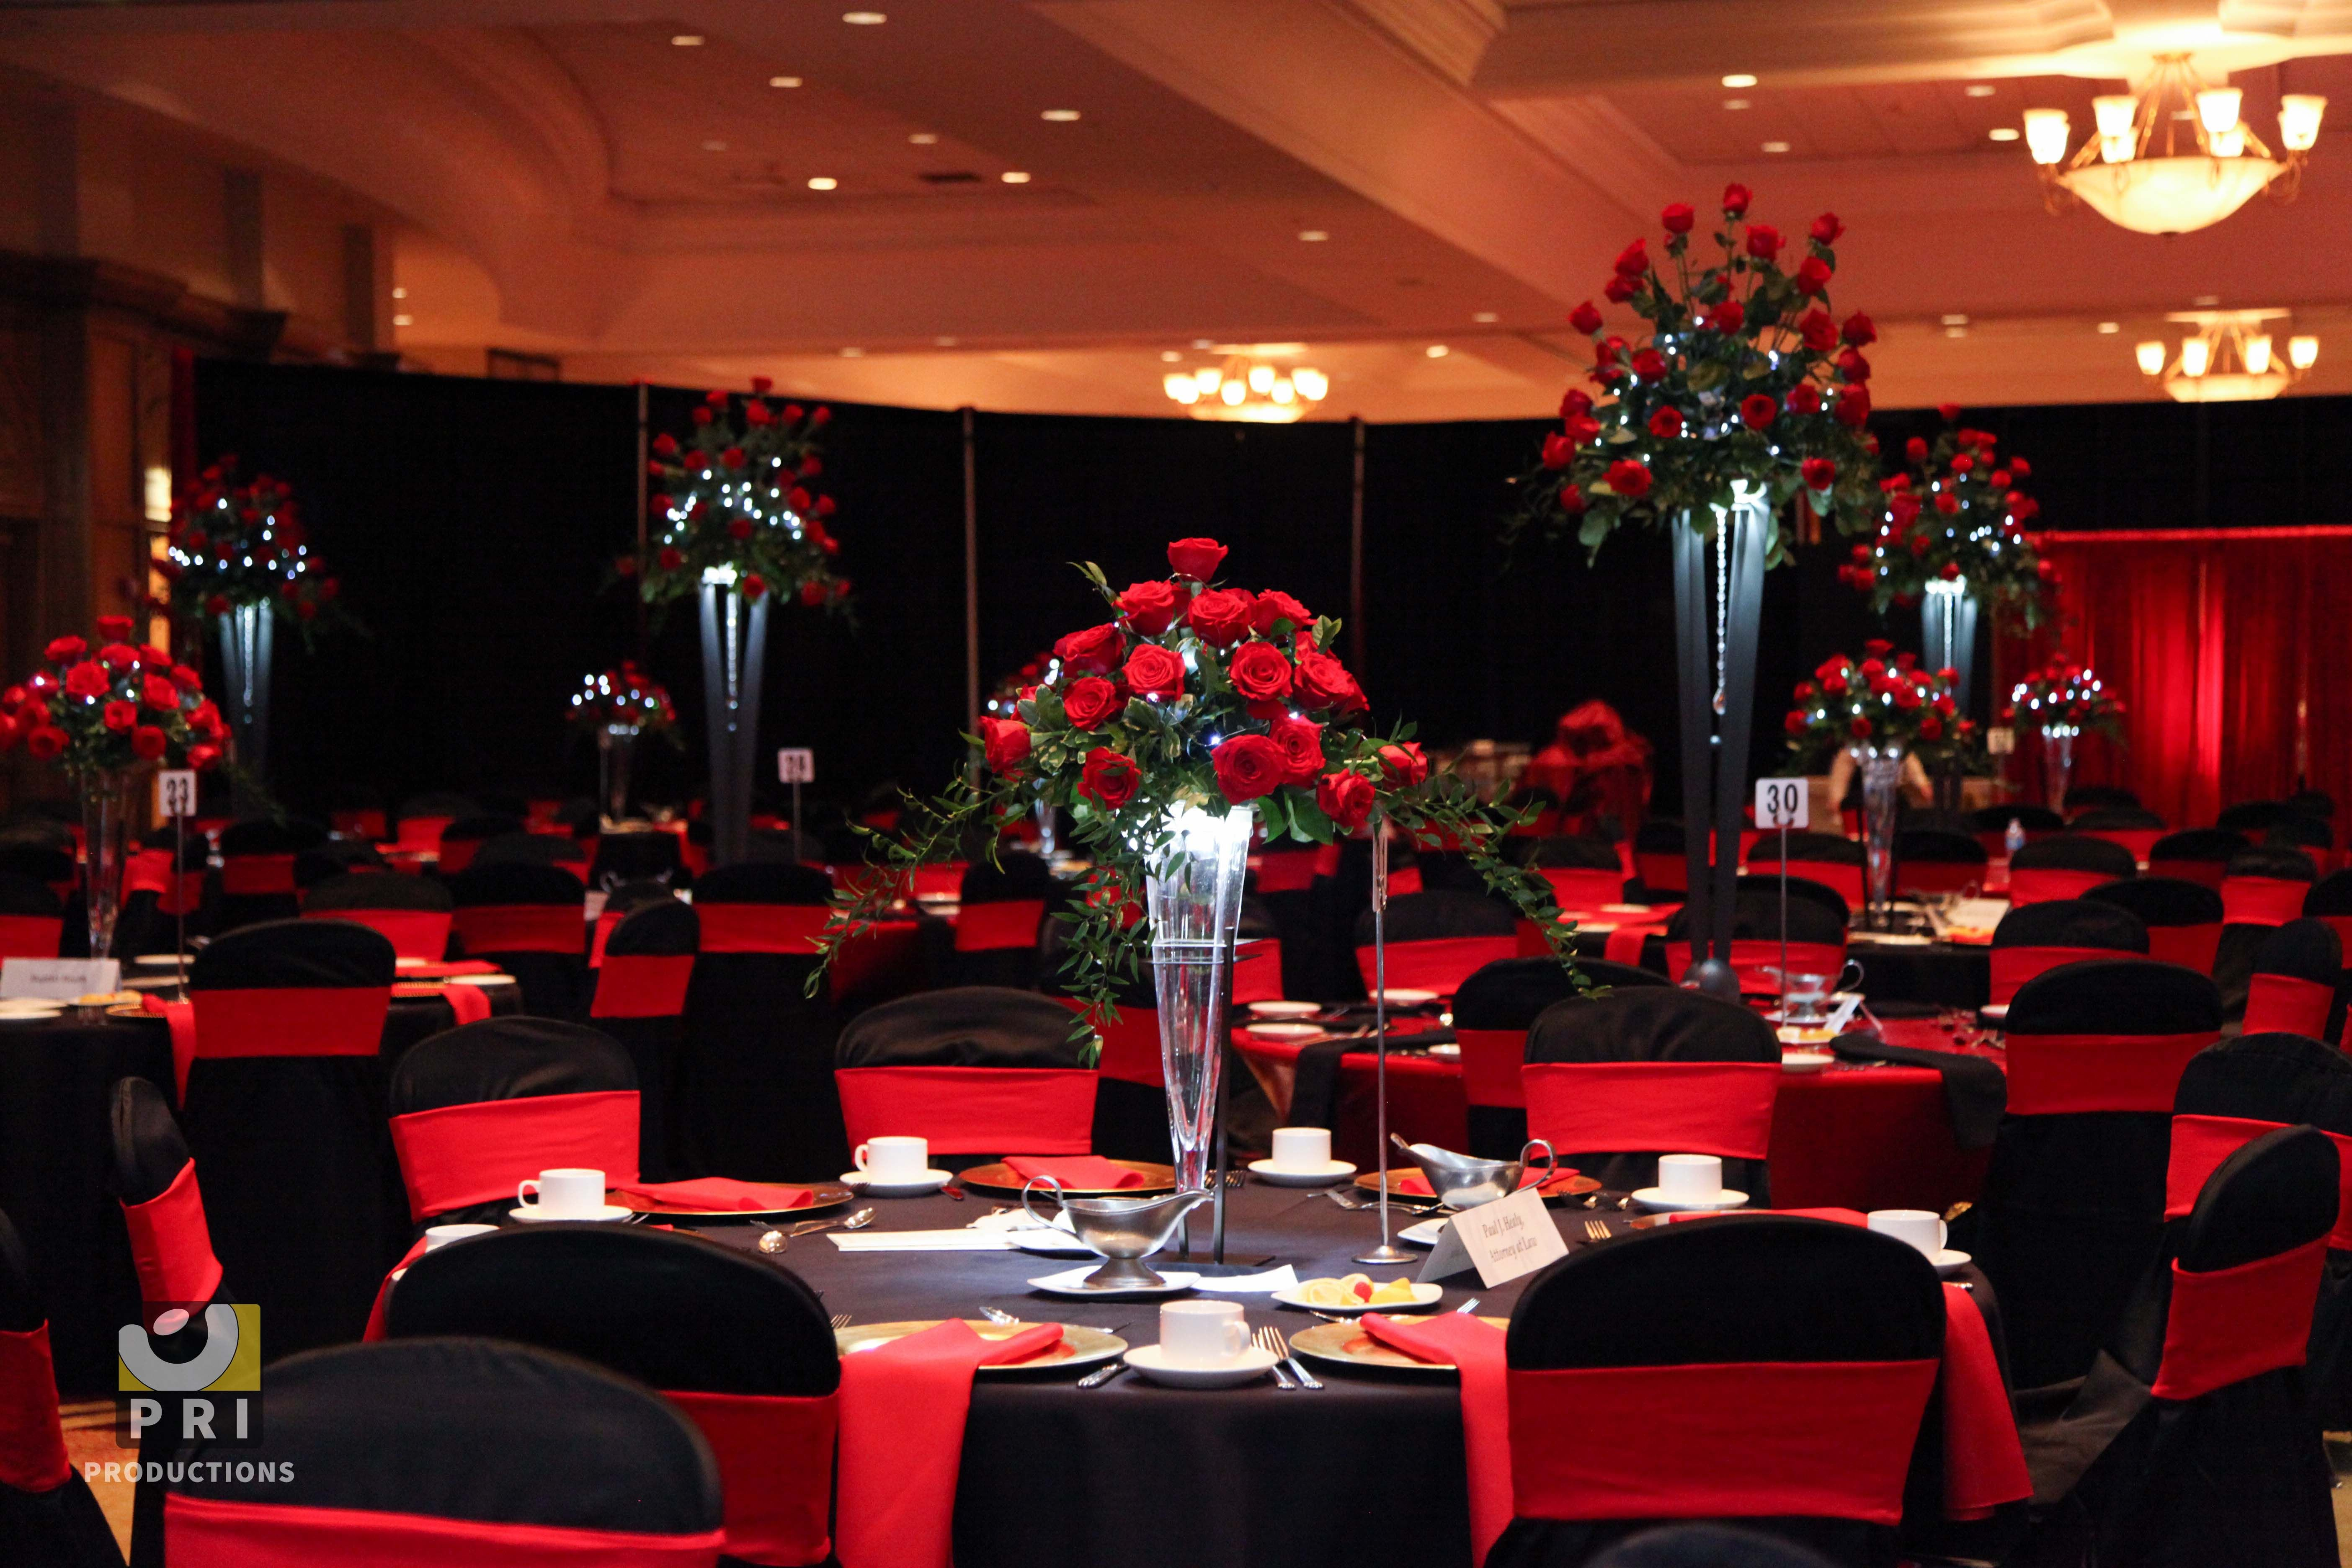 Red and Black Table Decor Fresh Black Tie event with Tall Red Rose Centerpieces Black and Red Linens